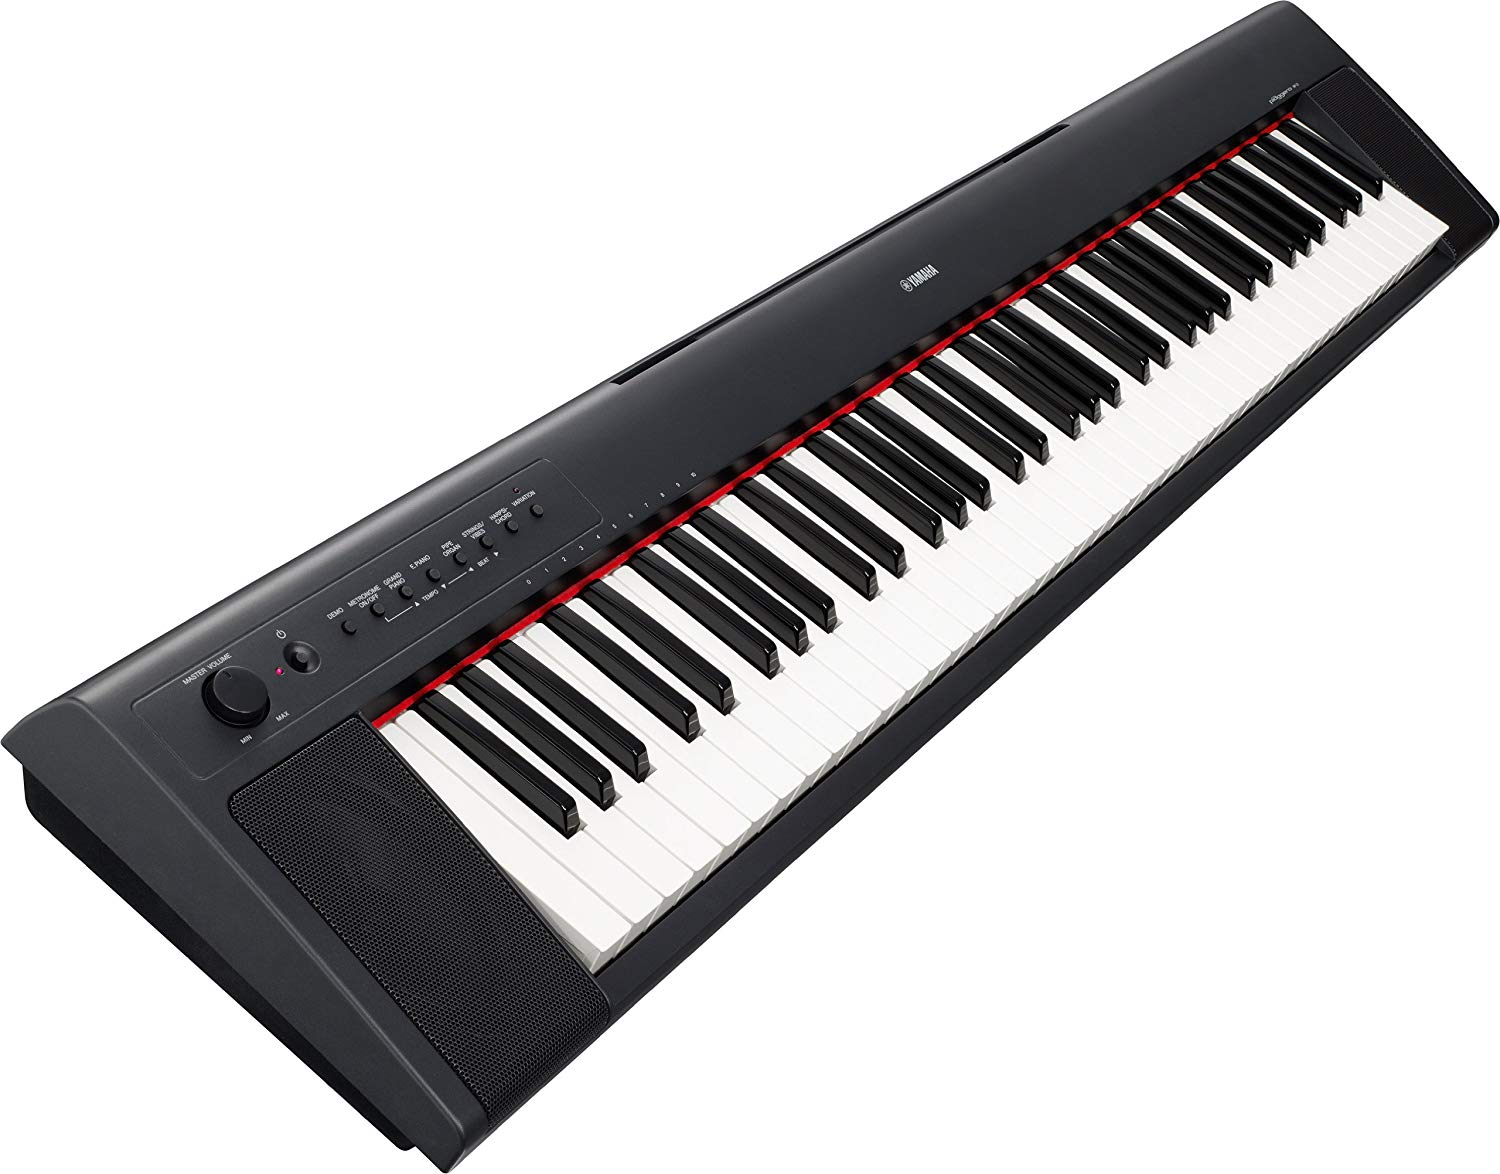 Yamaha NP-31 Digital Piano Review 2020